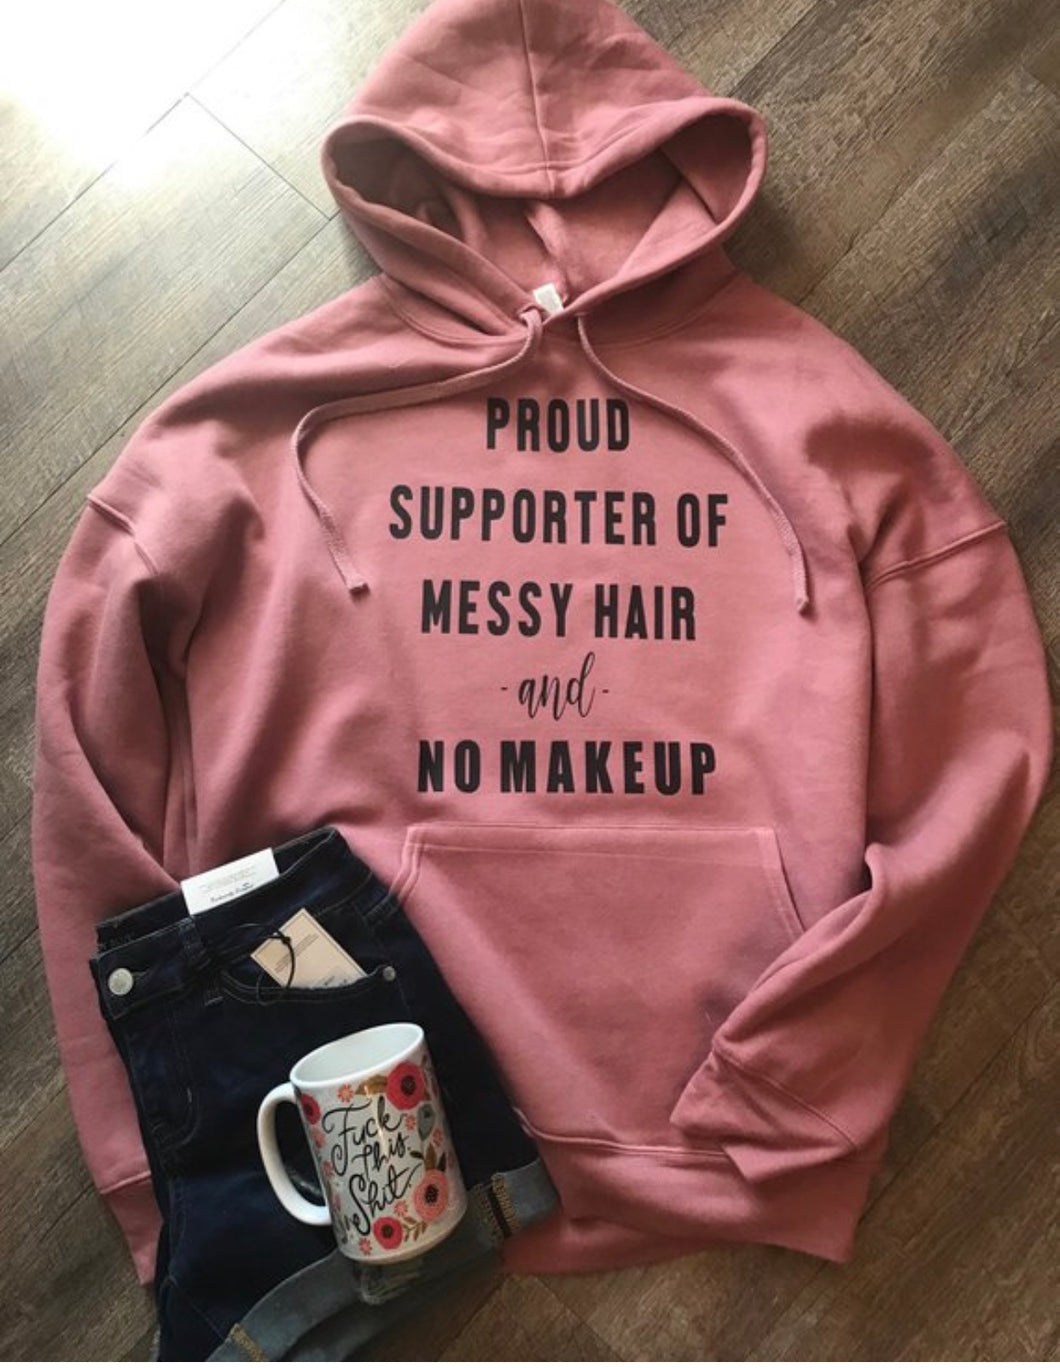 Proud Supporter of Messy Hair and No Makeup mauve bella canvas hoodie tshirt too! Funny shirt. - Mavictoria Designs Hot Press Express